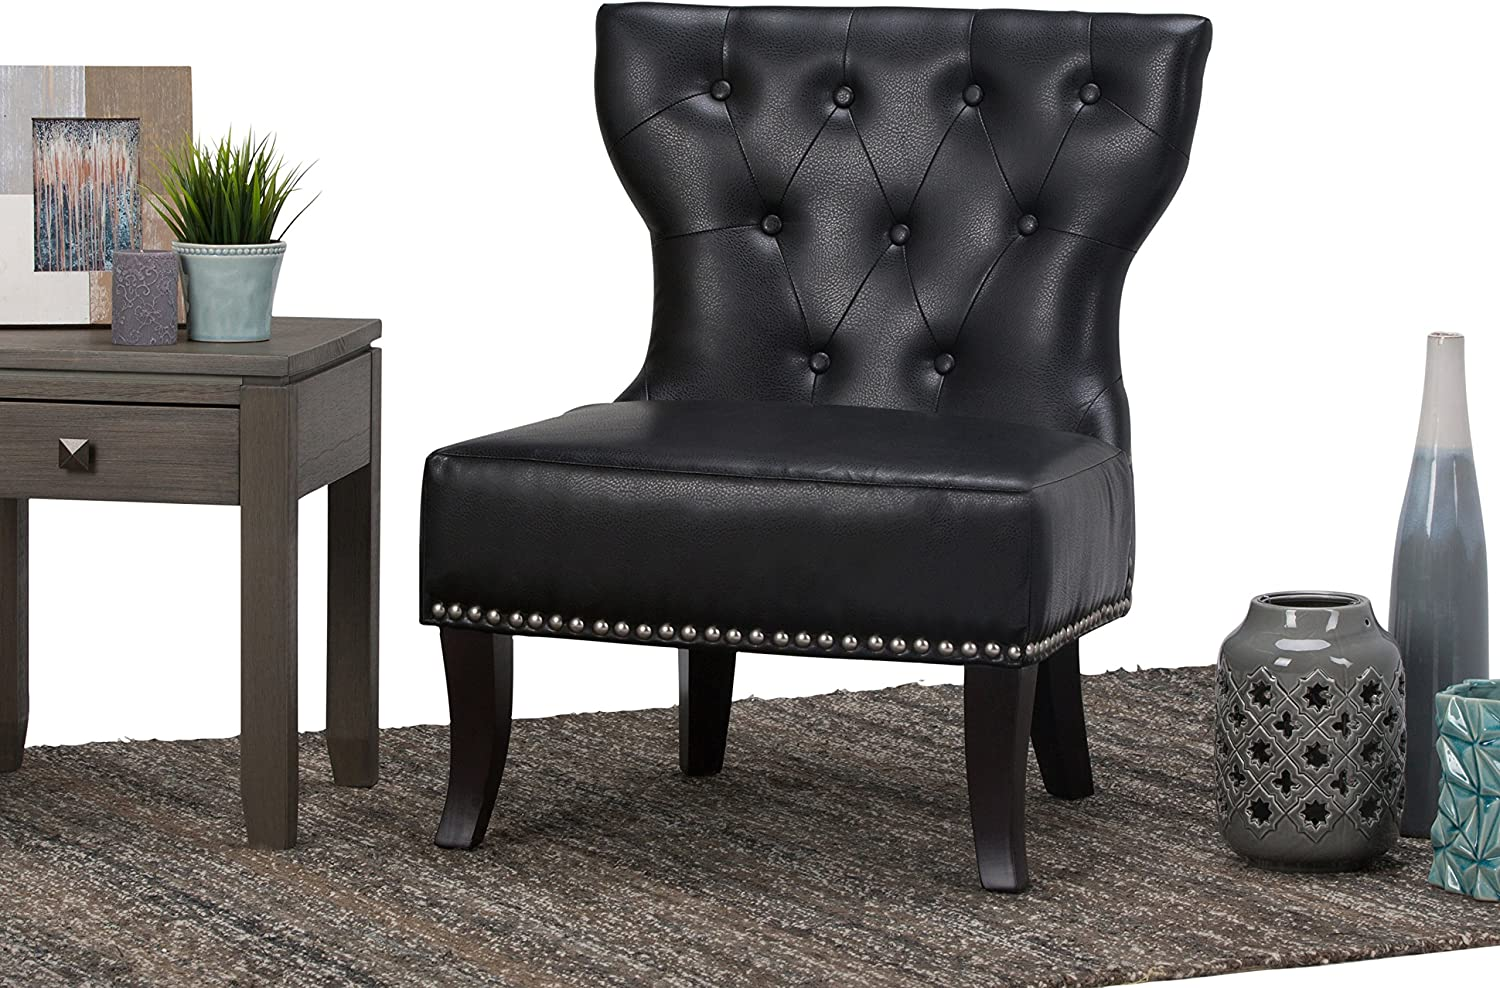 Simpli Home Kitchener 28 inch Wide Traditional Accent Slipper Chair in Black Textured Bonded Leather